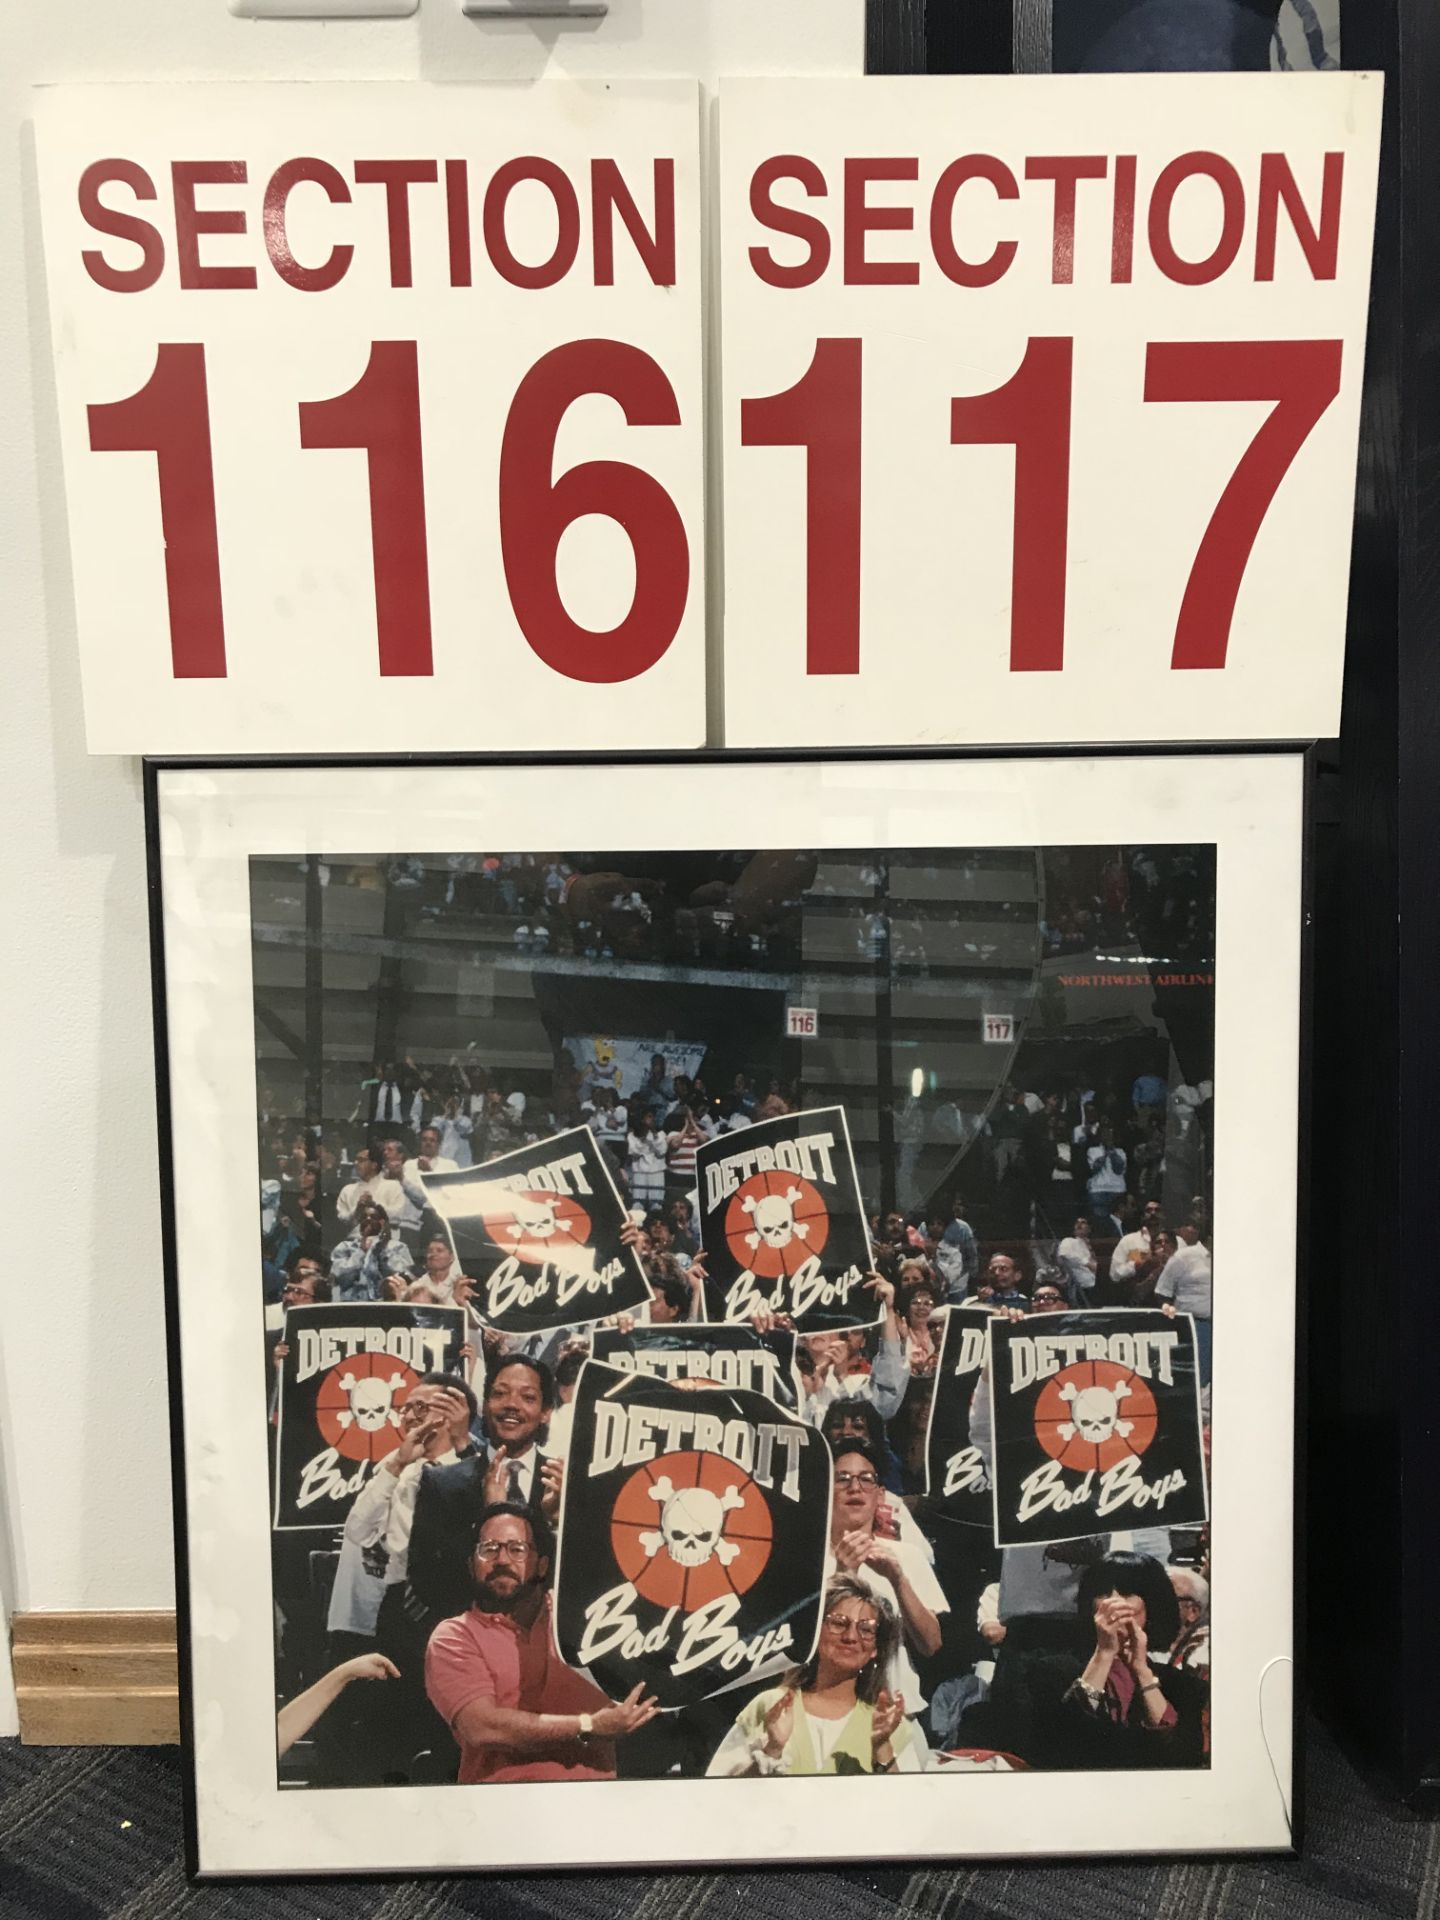 Lot 1I - Lot of: Framed Picture of Fans with Sec 116 & 117 in Background Along With Signs in the Picture ,